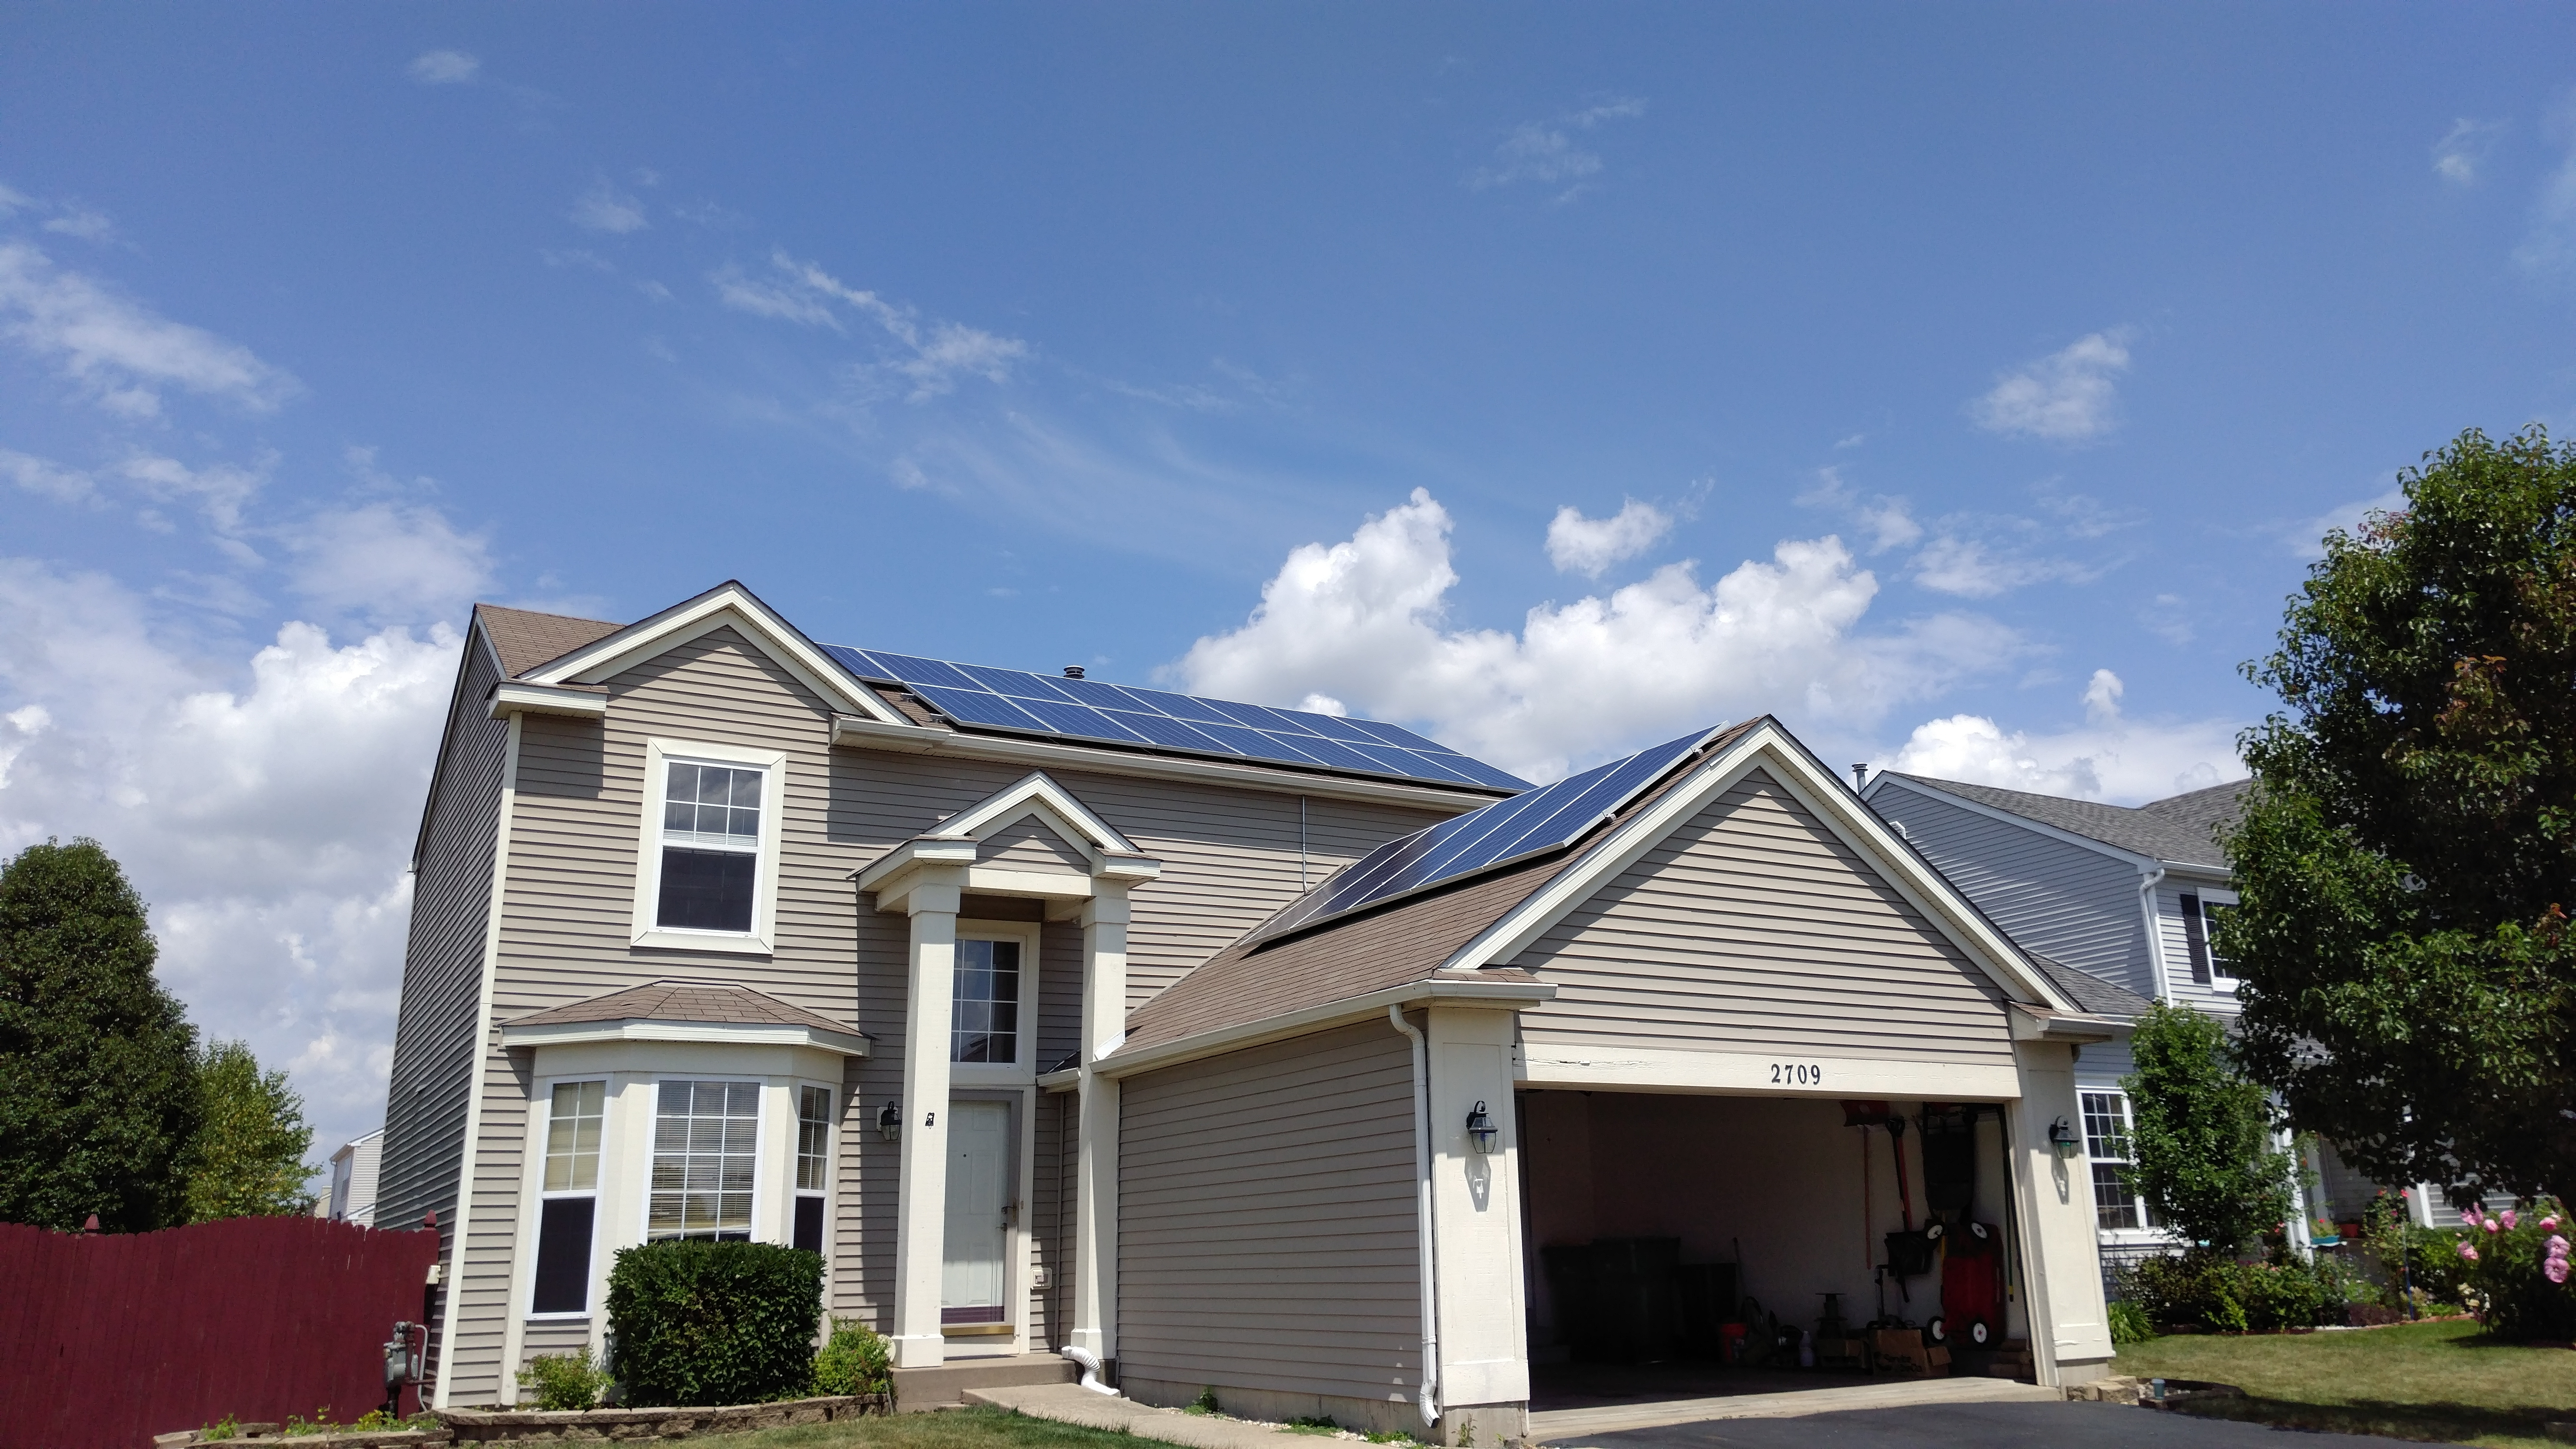 Rooftop residential home solar cells, solar panels, solar system.